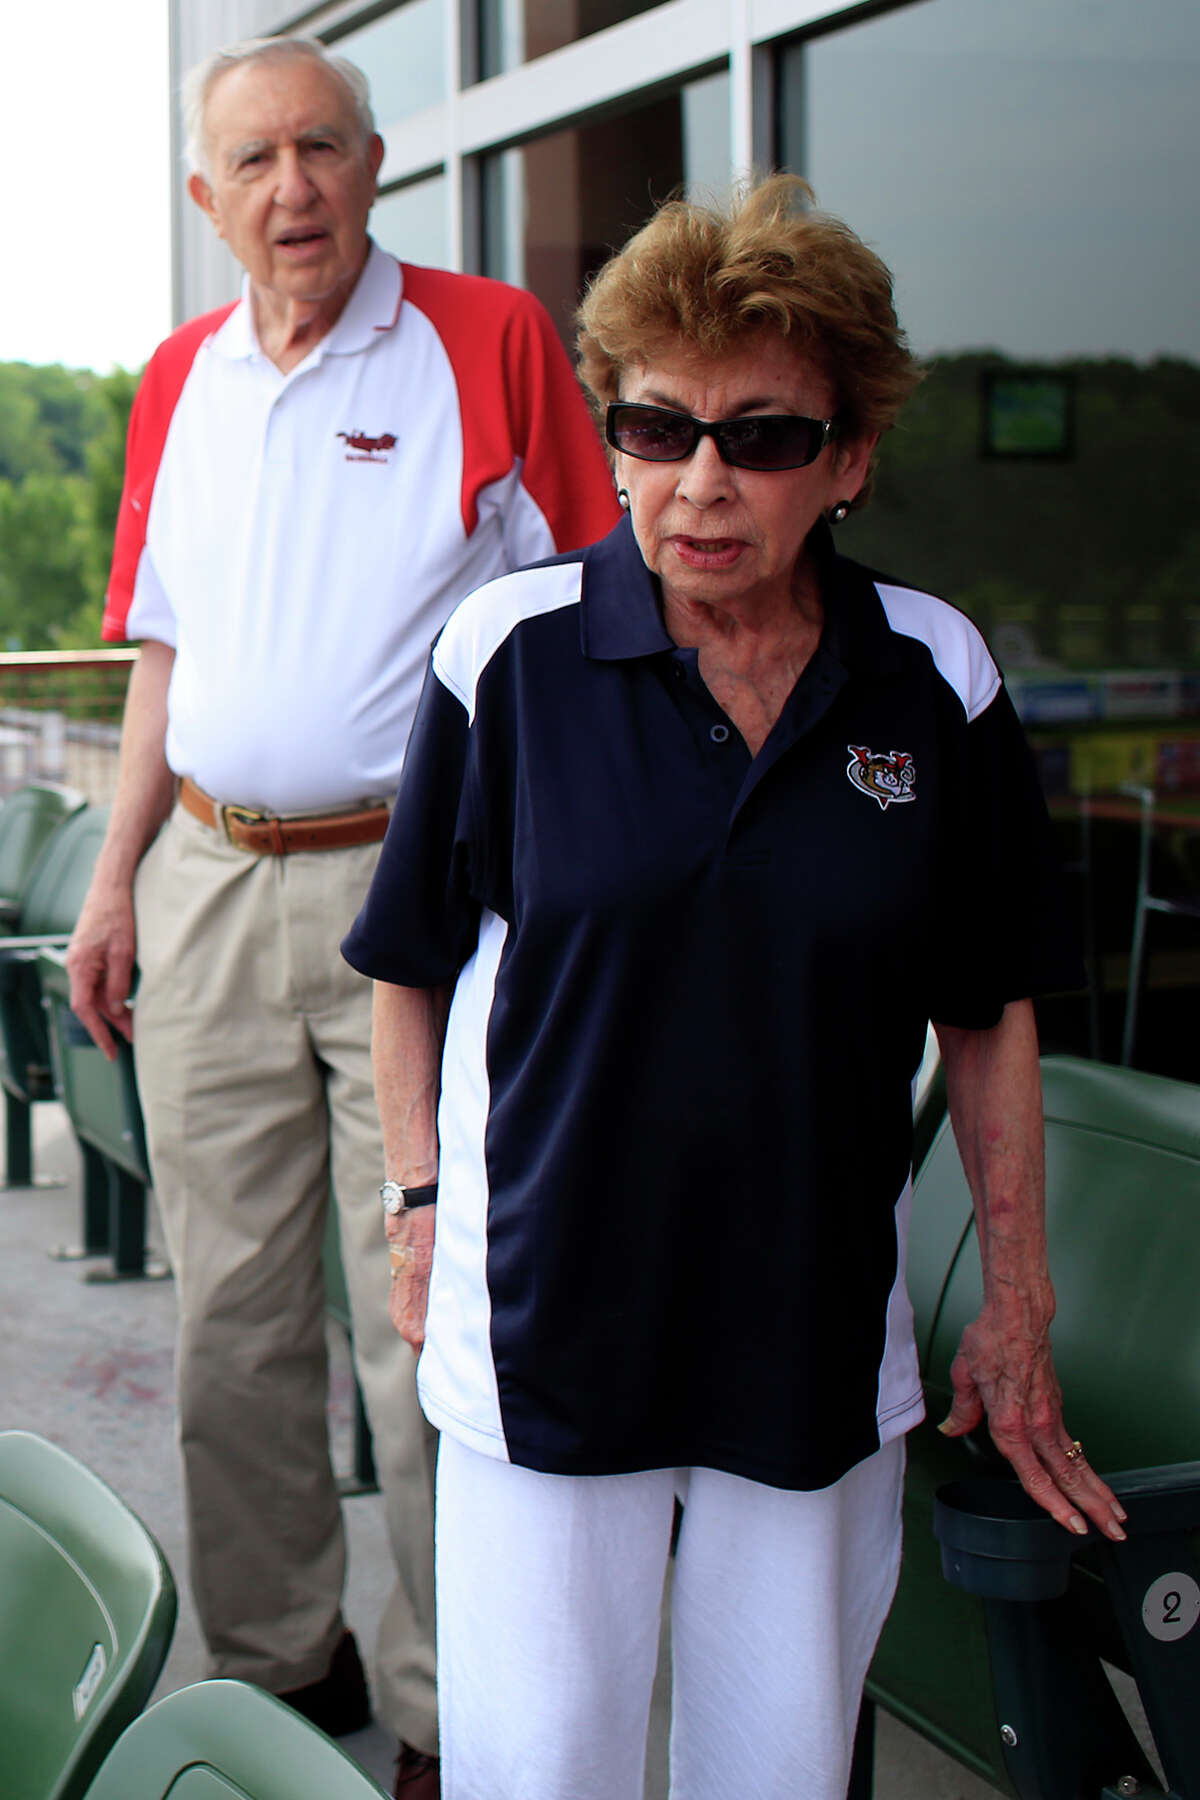 Tri-City ValleyCats owners Millie and Bill Gladstone stand for the national anthem before a game against Connecticut Tigers Tuesday, July 8, 2014, at Joseph L. Bruno Stadium in Troy, N.Y. (Tom Brenner/ Special to the Times Union)